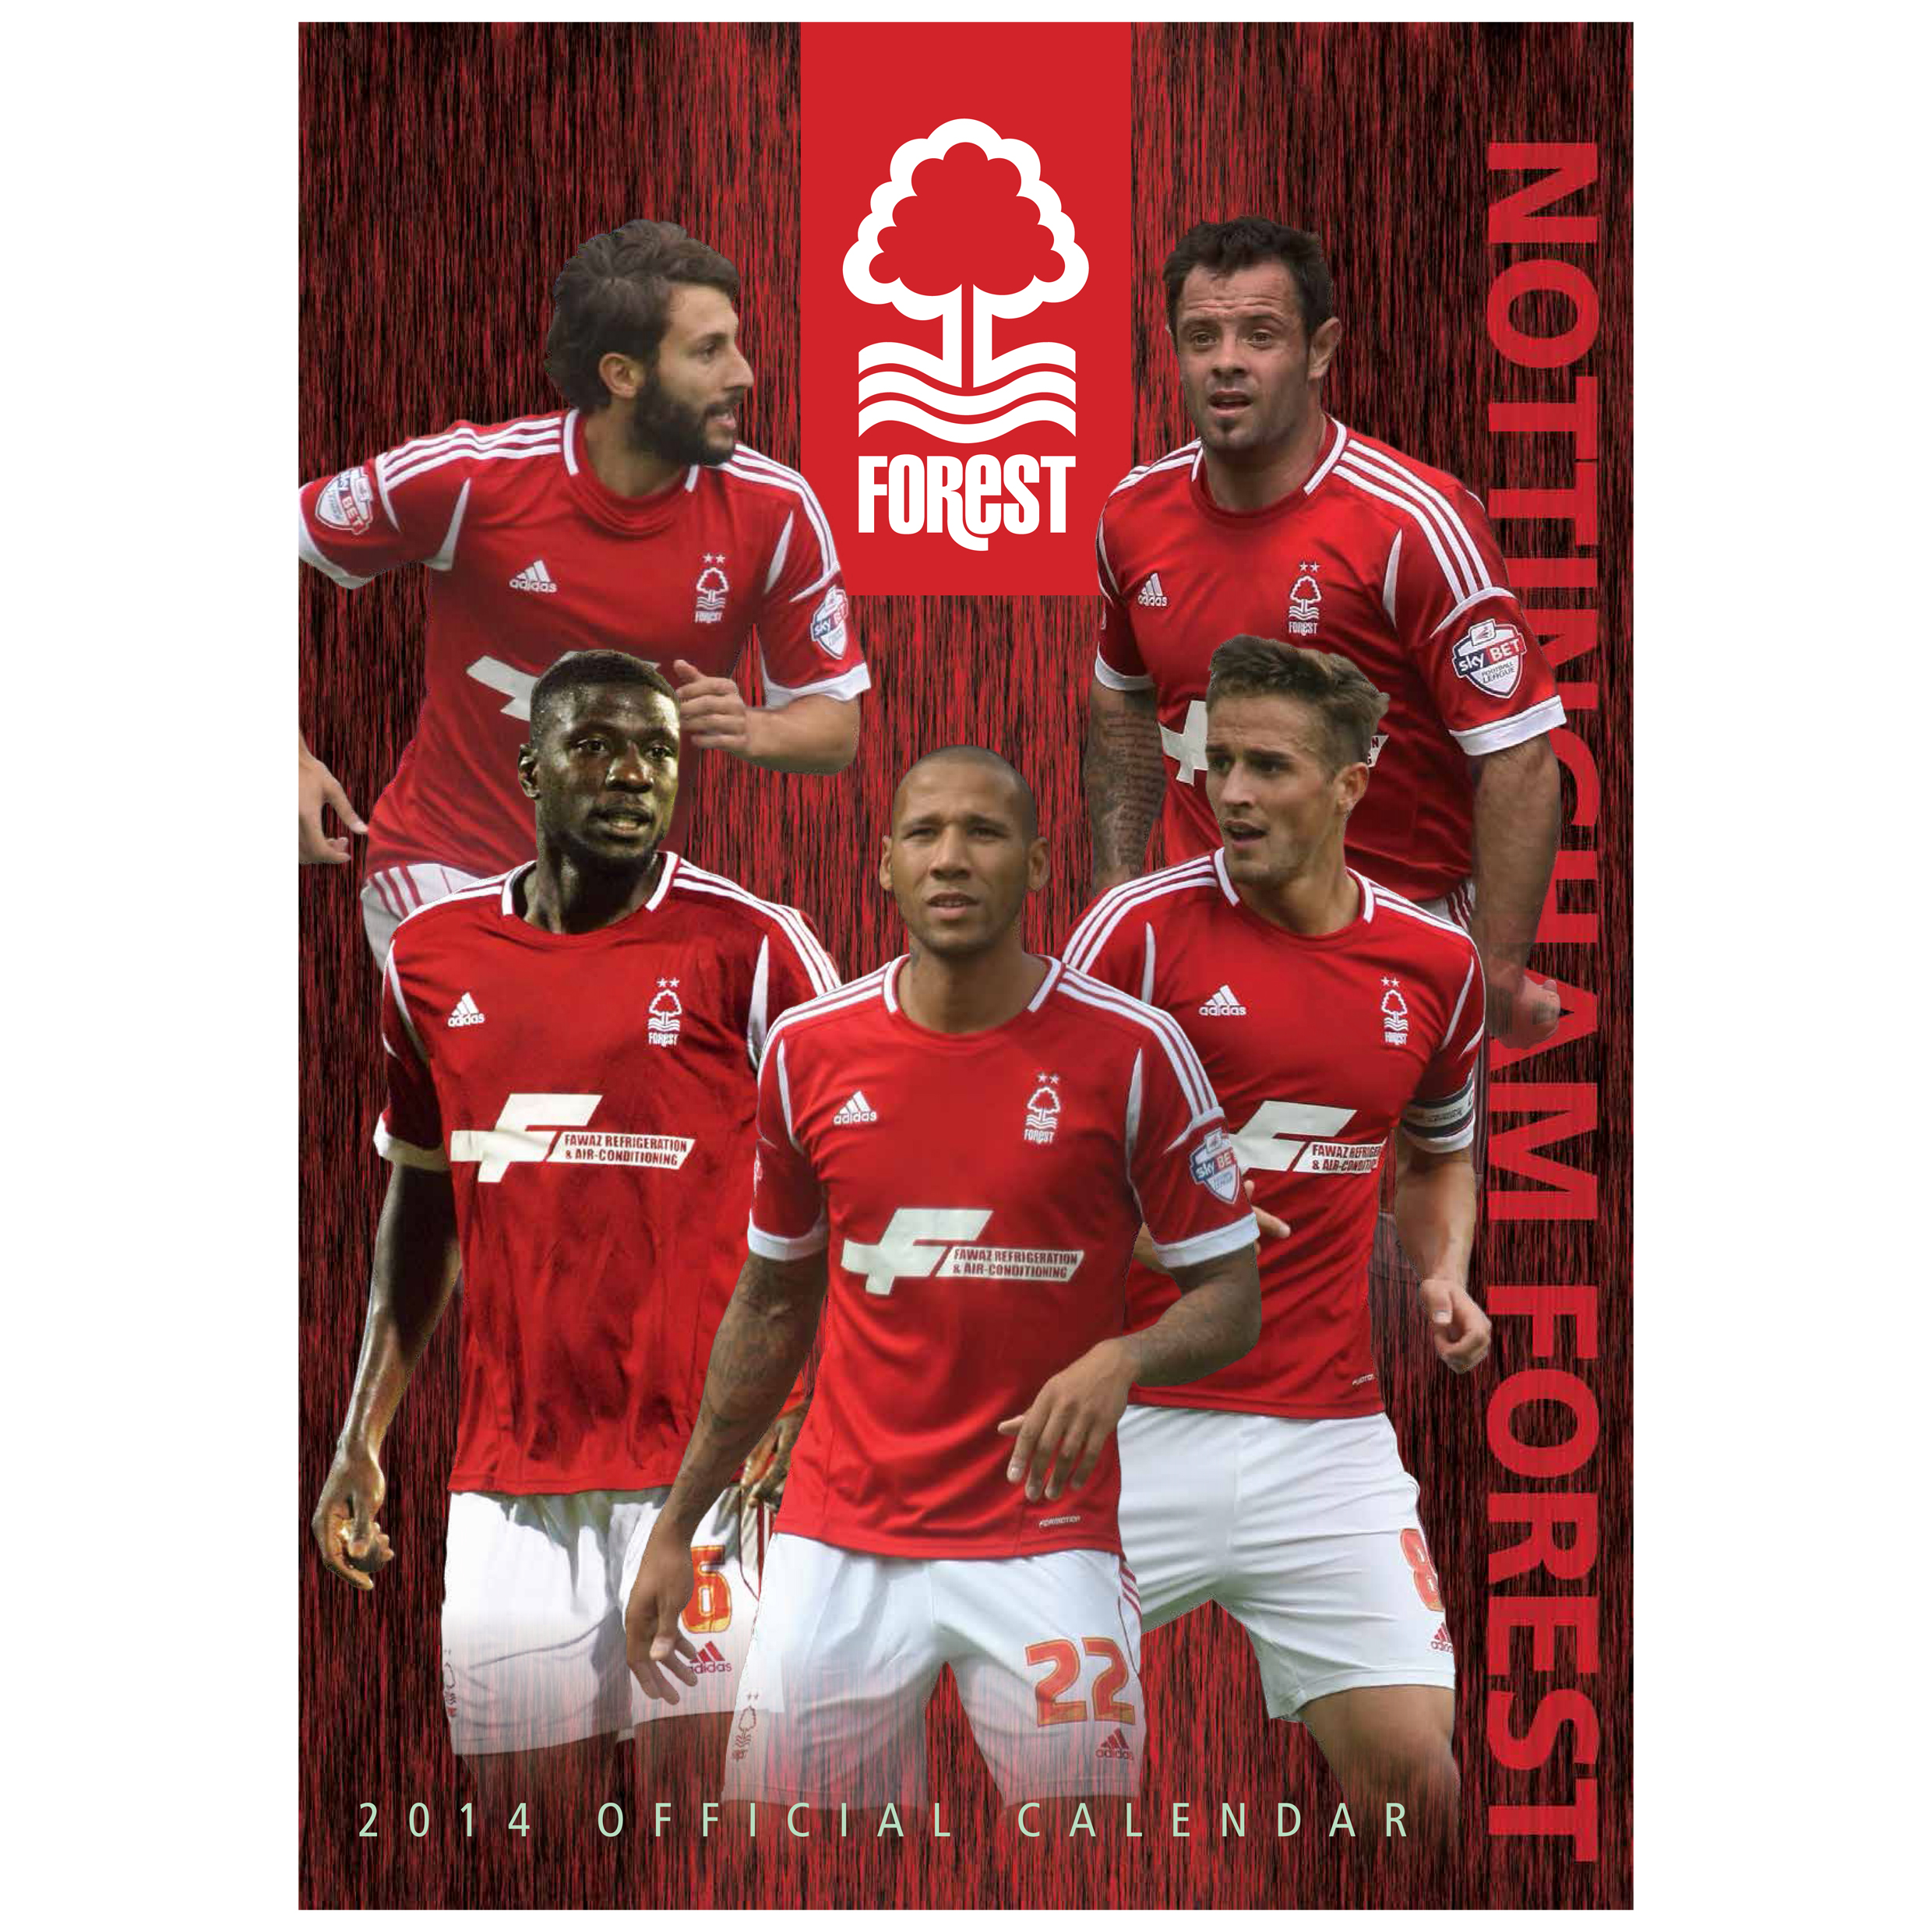 Nottingham Forest Calendar 2014